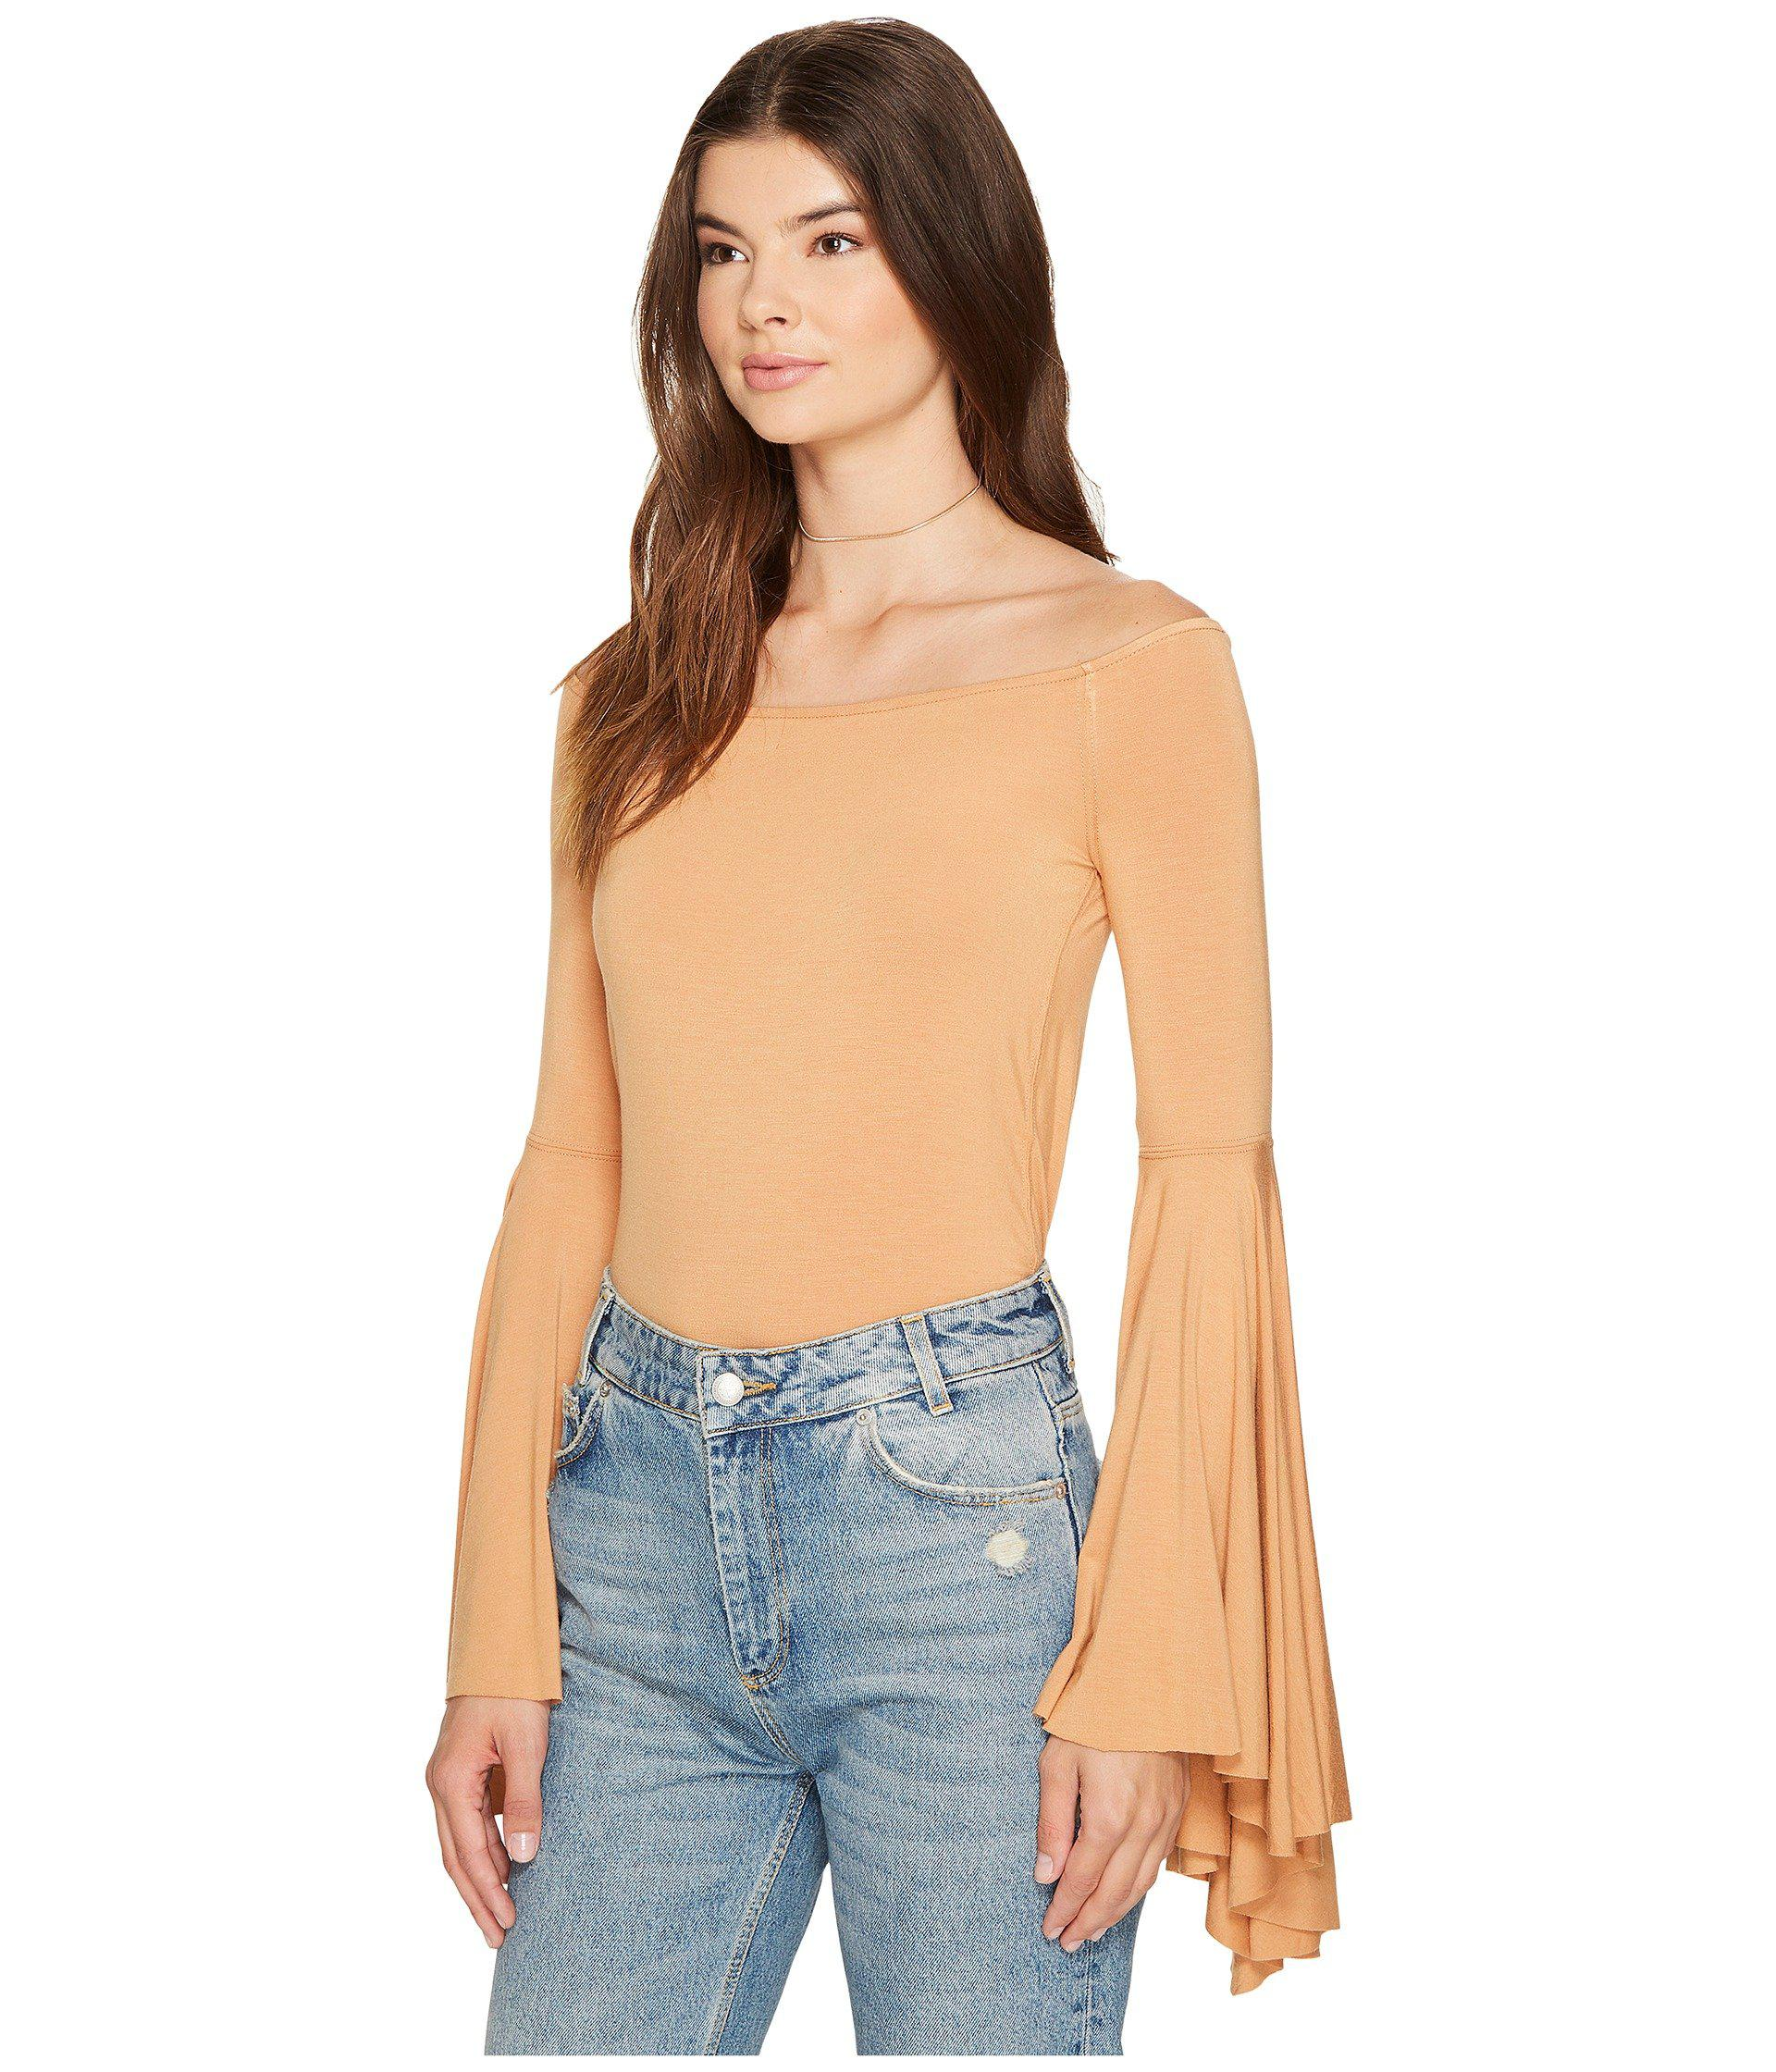 acb481b195d6c Lyst - Free People Birds Of Paradise Top in Natural